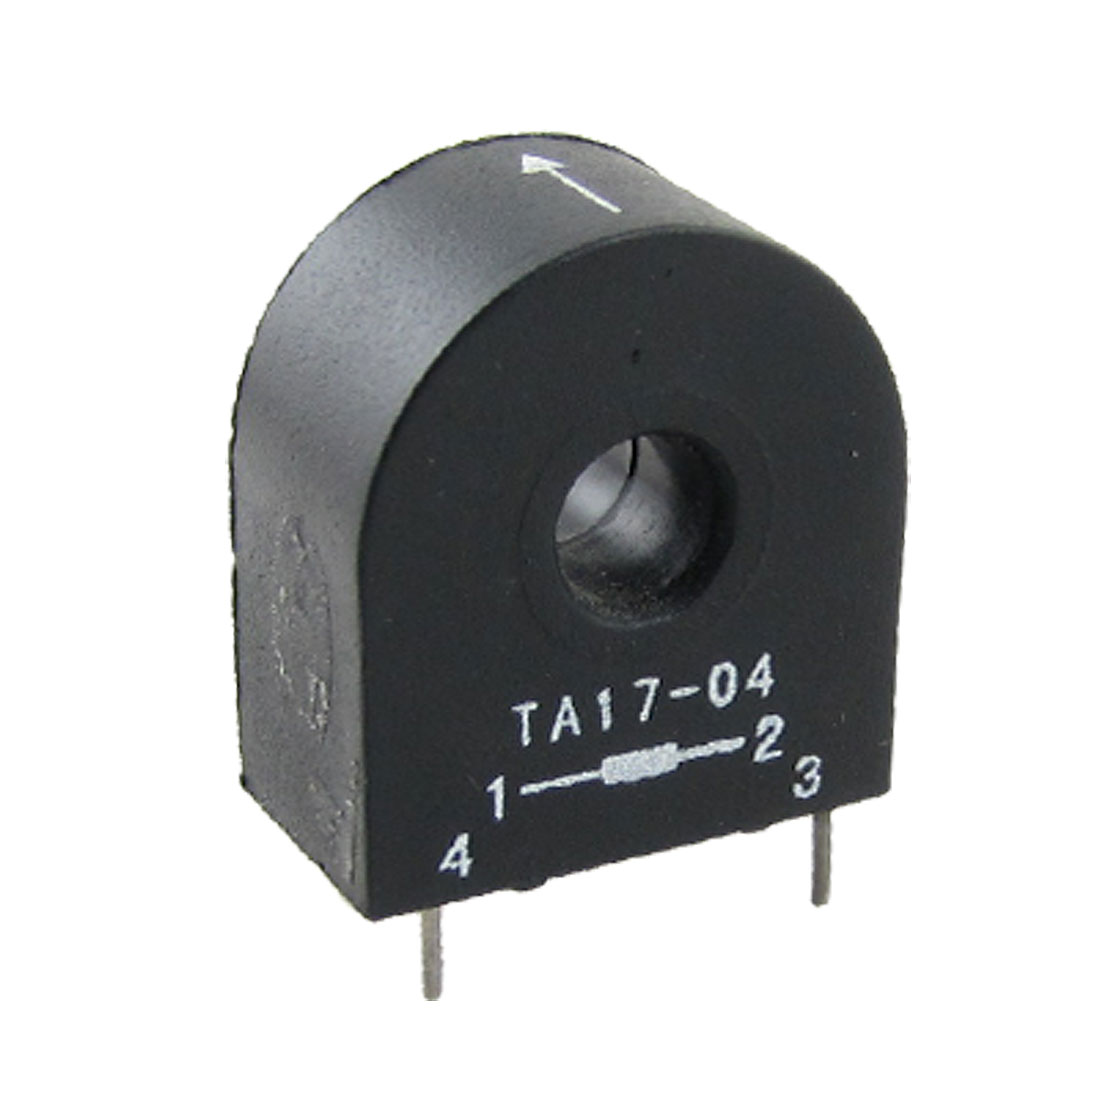 0-20A Input Current Epoxy Resin Embedding Precision Current Transformer TA17